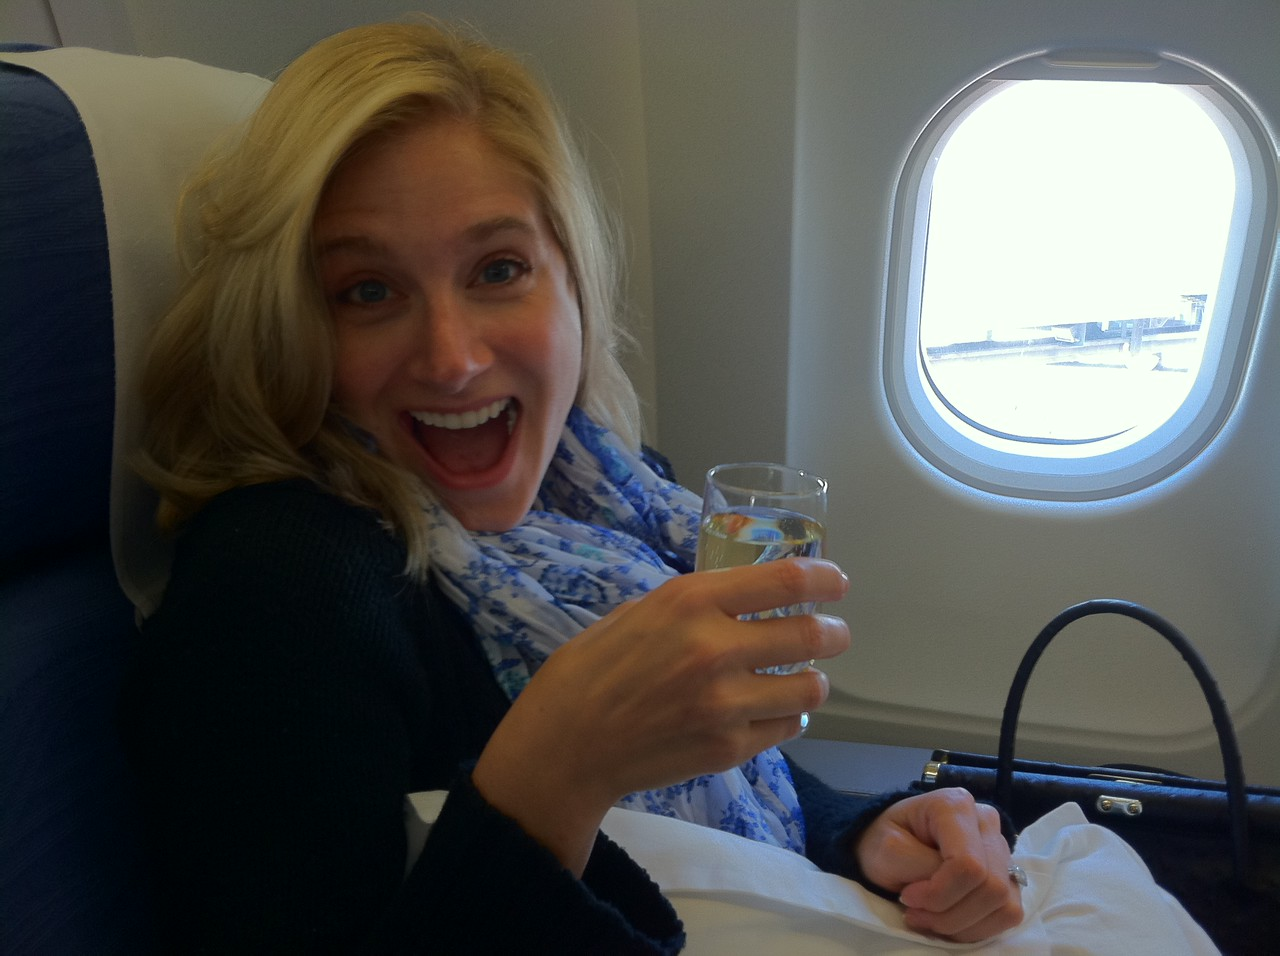 Champagne in business class!